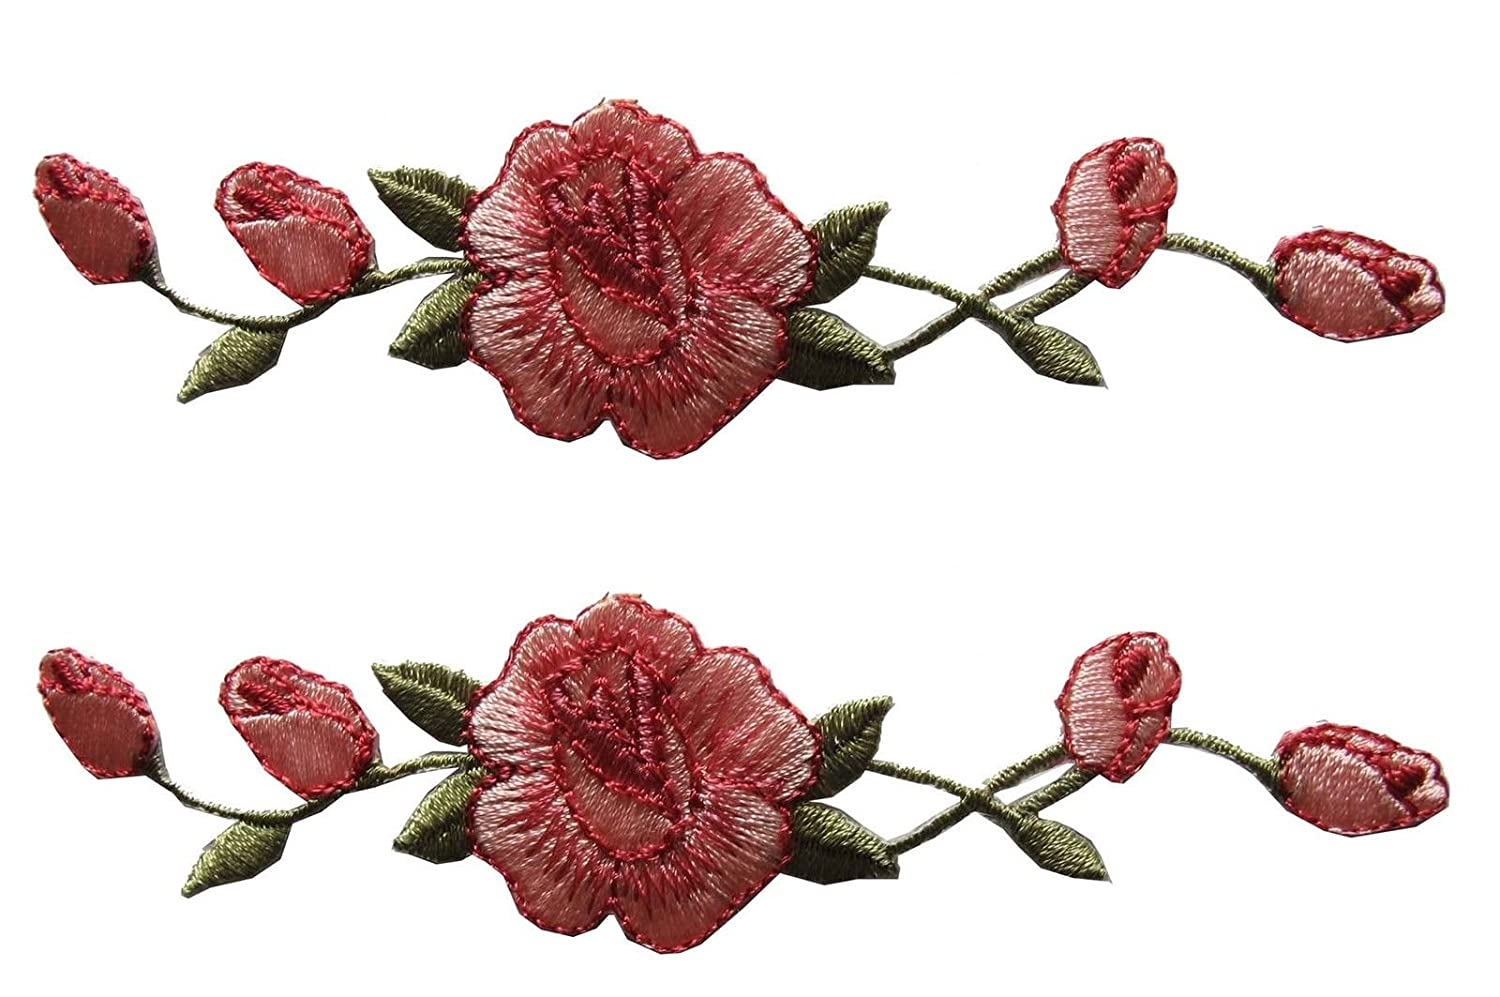 Sewing ETDesign 2 Pcs Applique Patch Rose Flower Embroidery Iron On Flower Appliques For Craft Scrapbooking Decorative 1 1//8x4 3//4 inch Clothing Pink